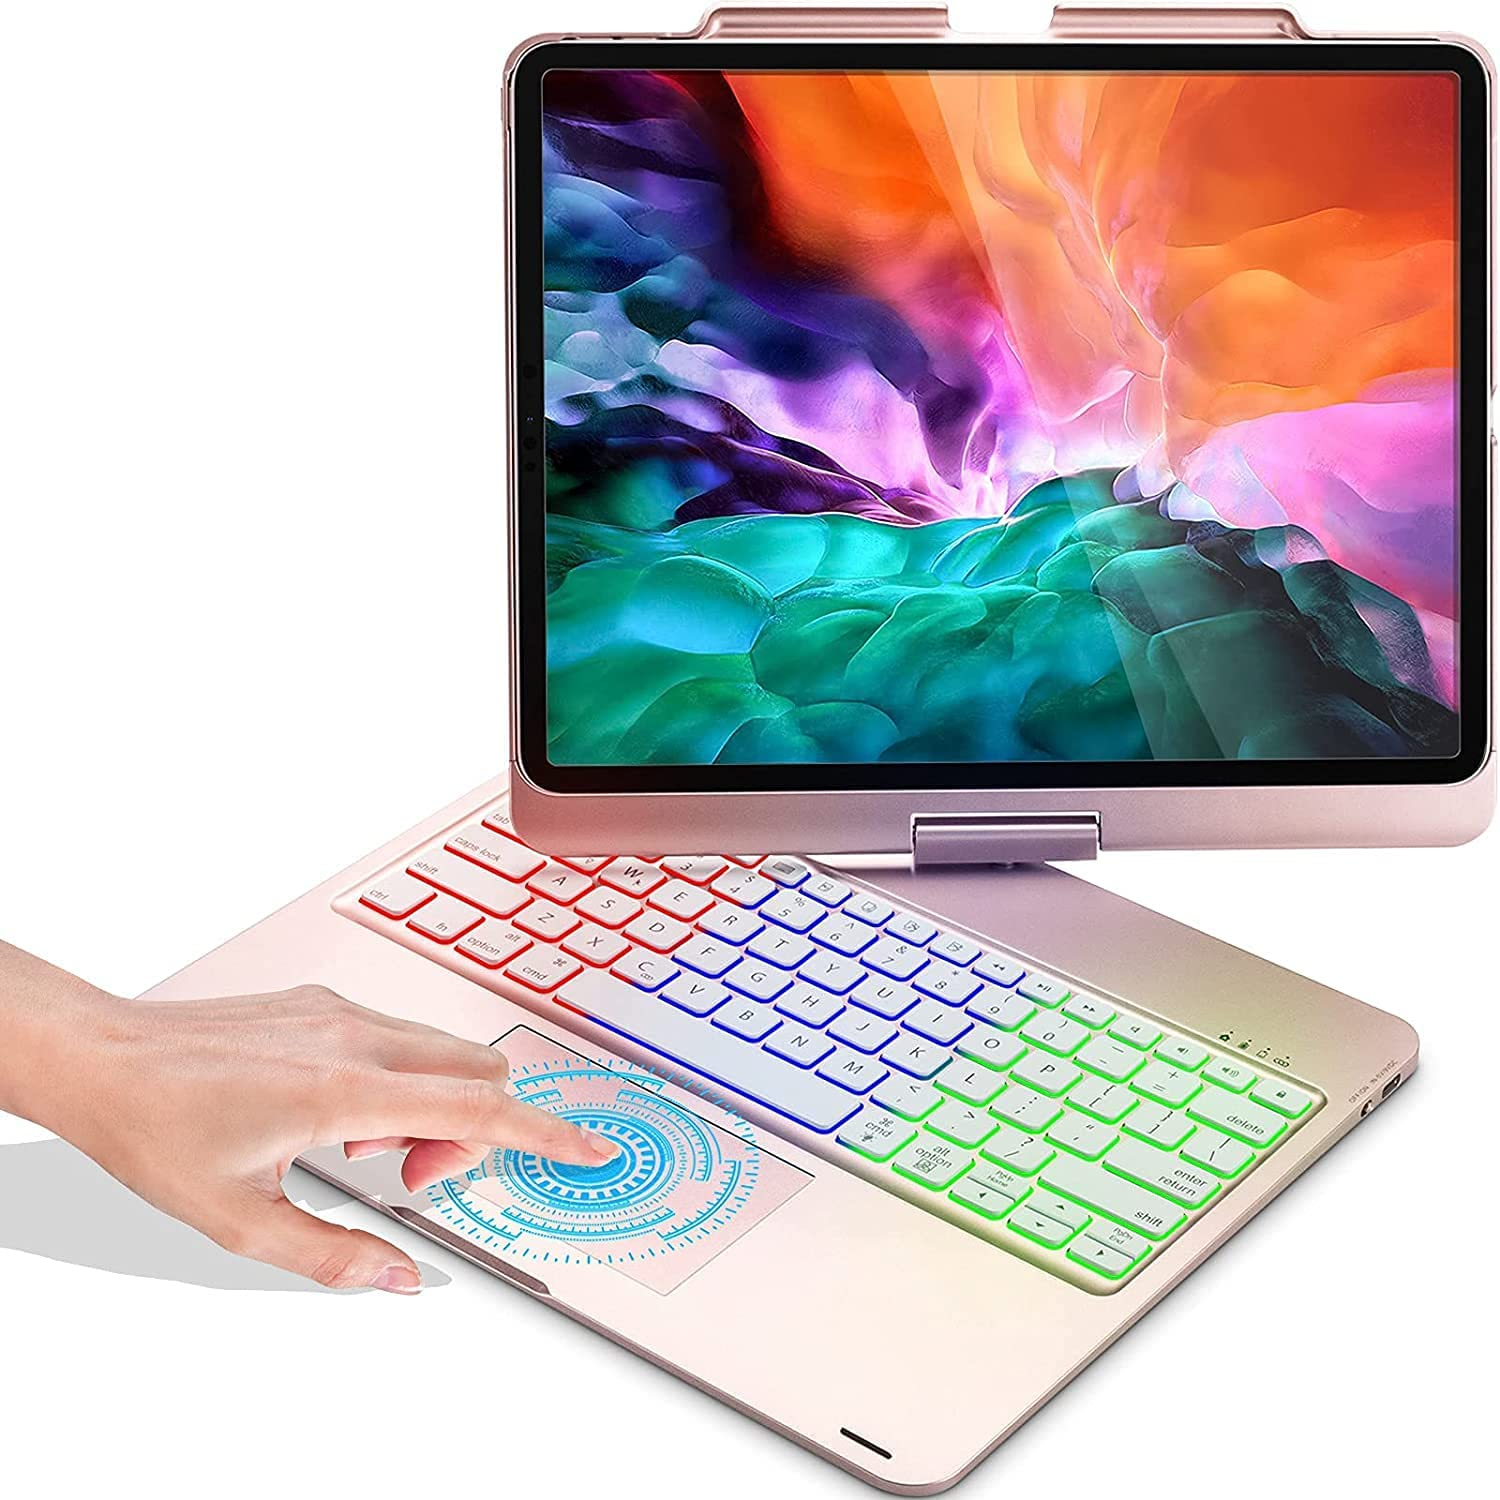 Touchpad Keyboard Case for iPad Pro 12.9 2020 & 2018 (NOT for 5th Gen 2021), Compatible with iPad 12.9-in 3rd 4th Generation, Wireless Apple Pencil Charging, Rainbow Backlits, 360 Rotation - Rose gold